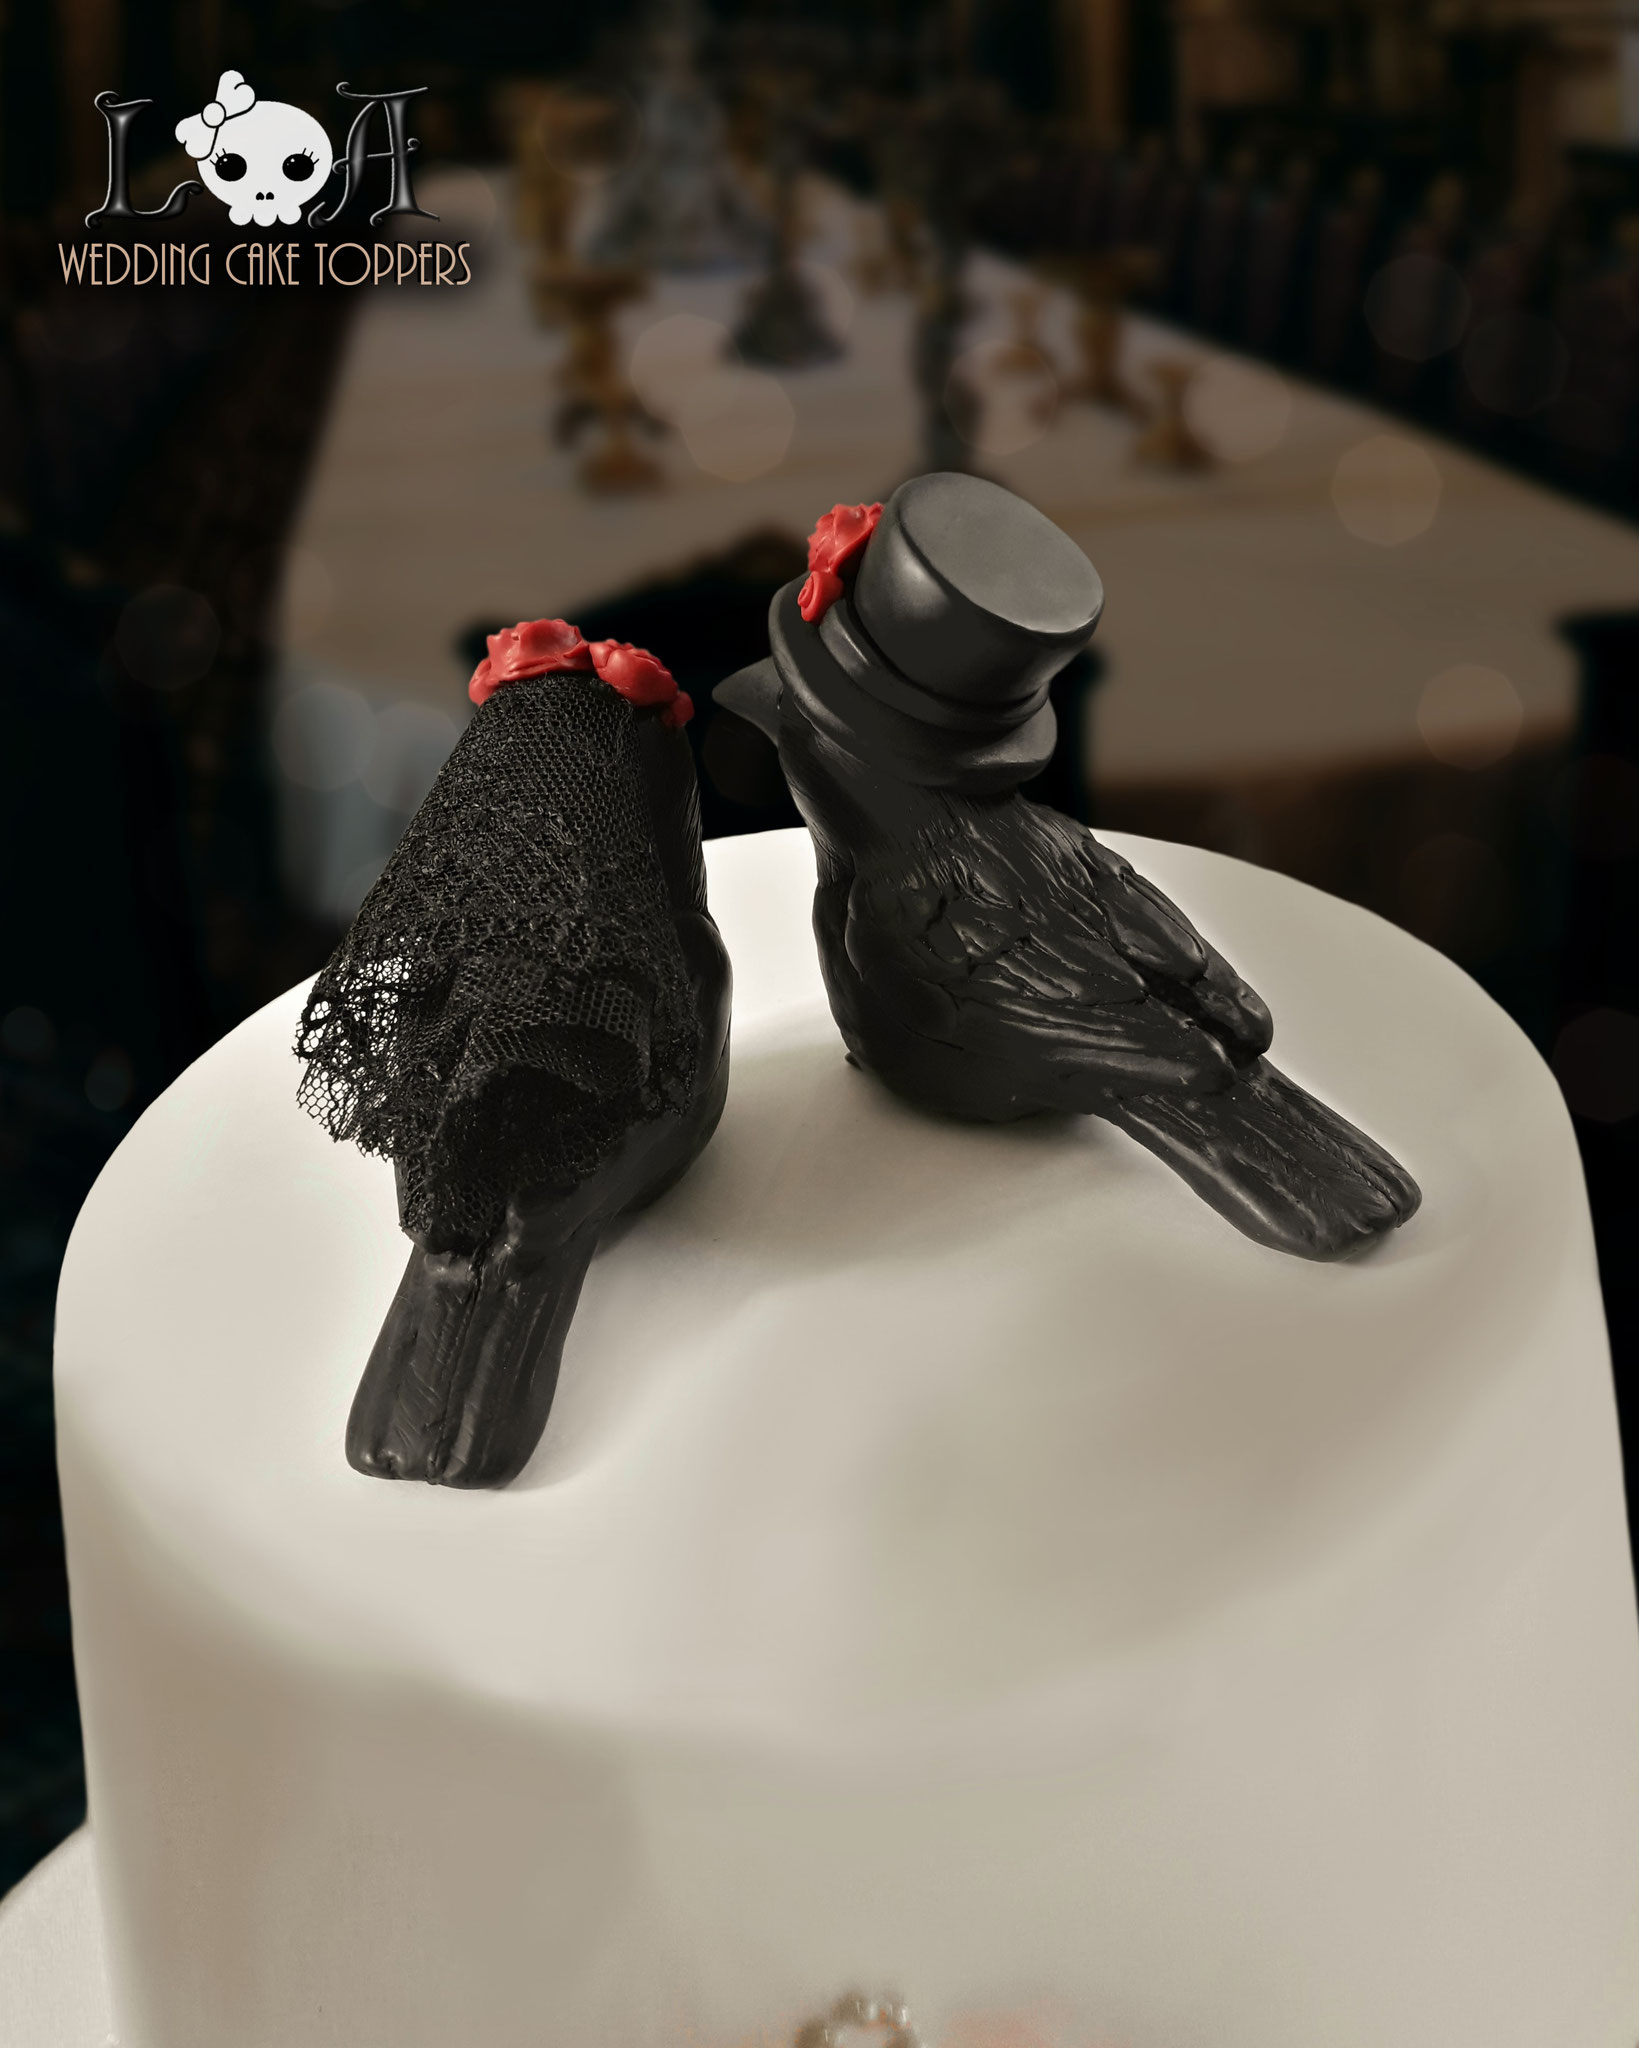 Gothic Raven Wedding Cake Toppers